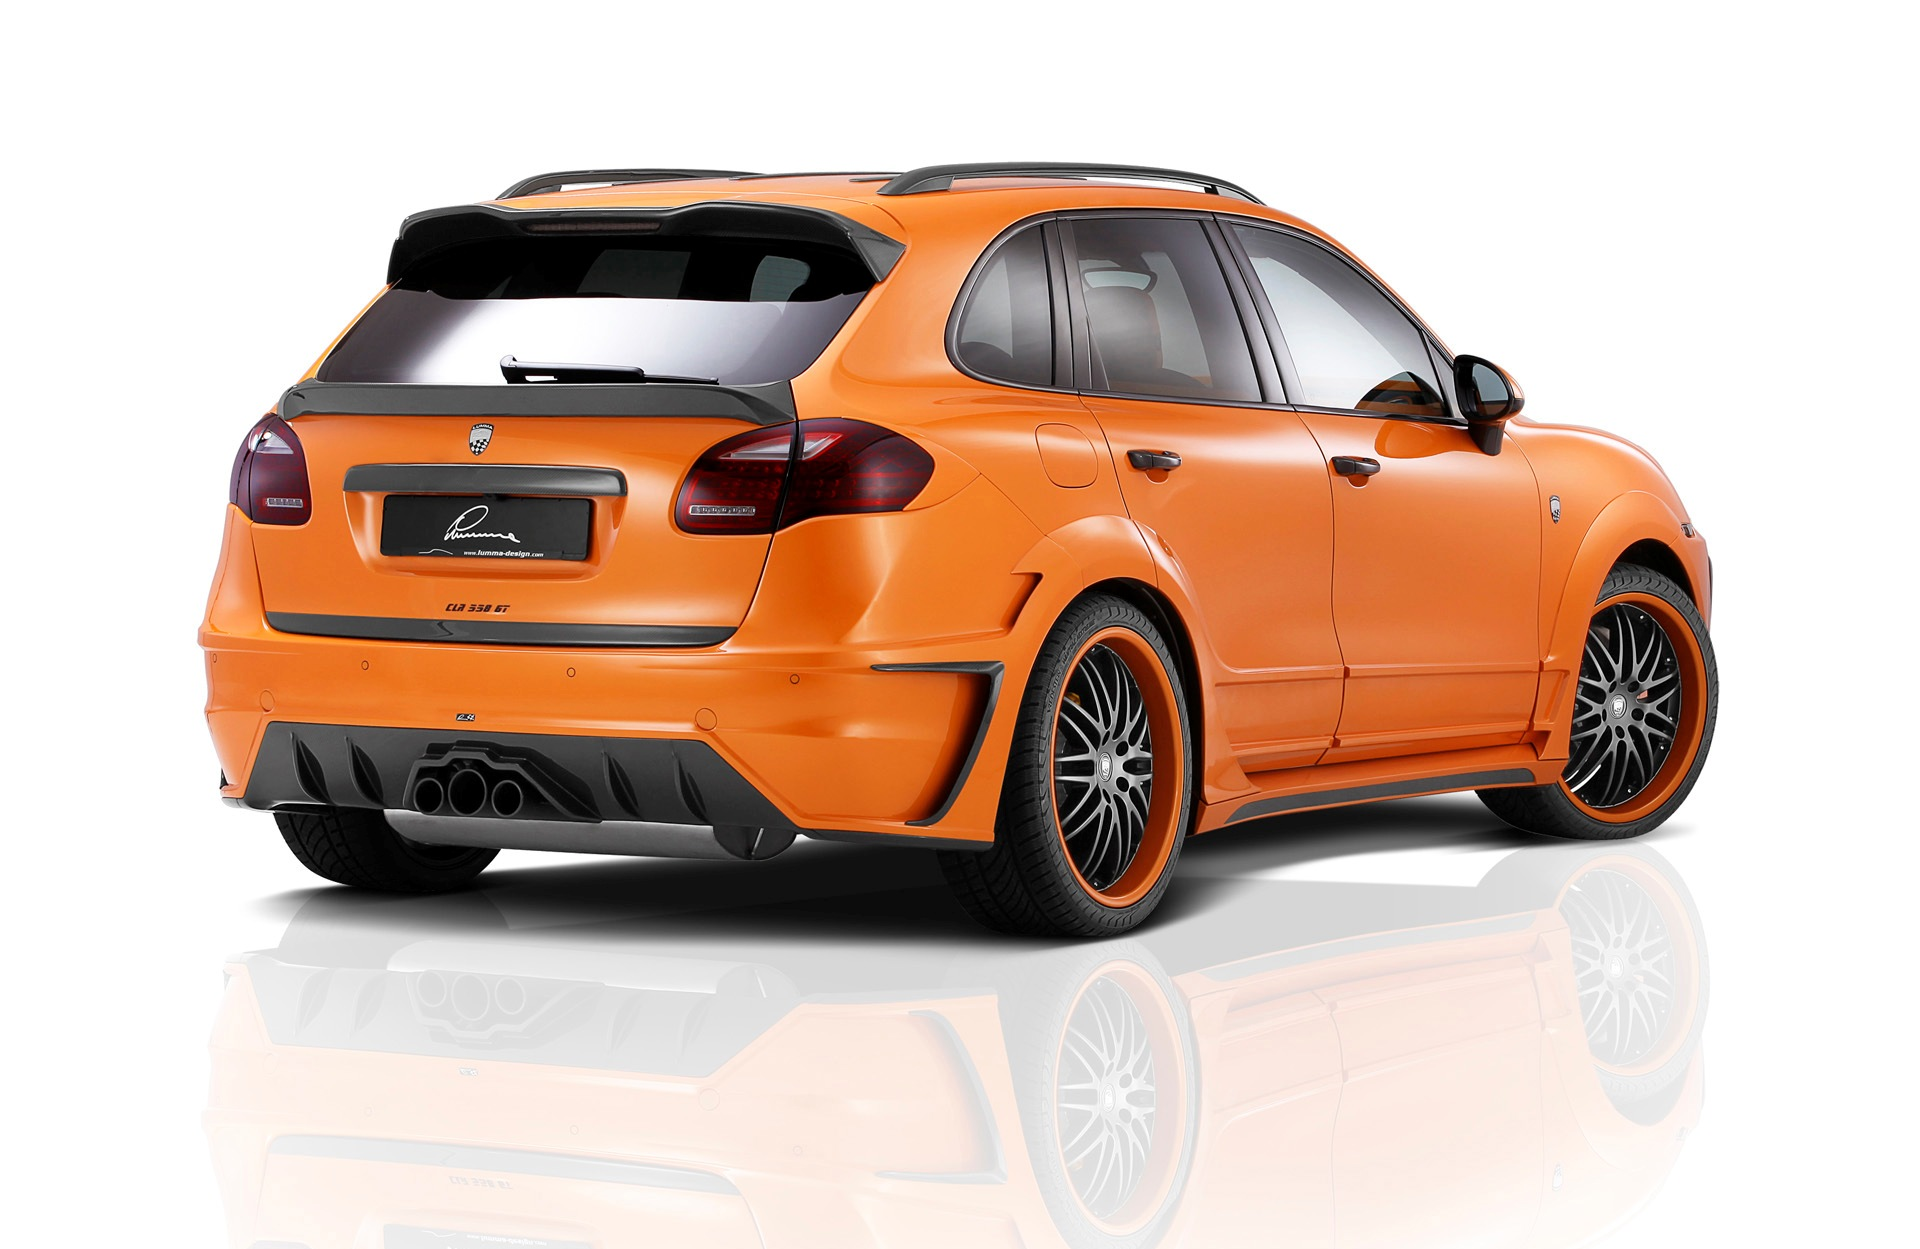 2012-Lumma-Design-Porsche-Cayenne-Orange-Metallic-Studio-6-1920x1440